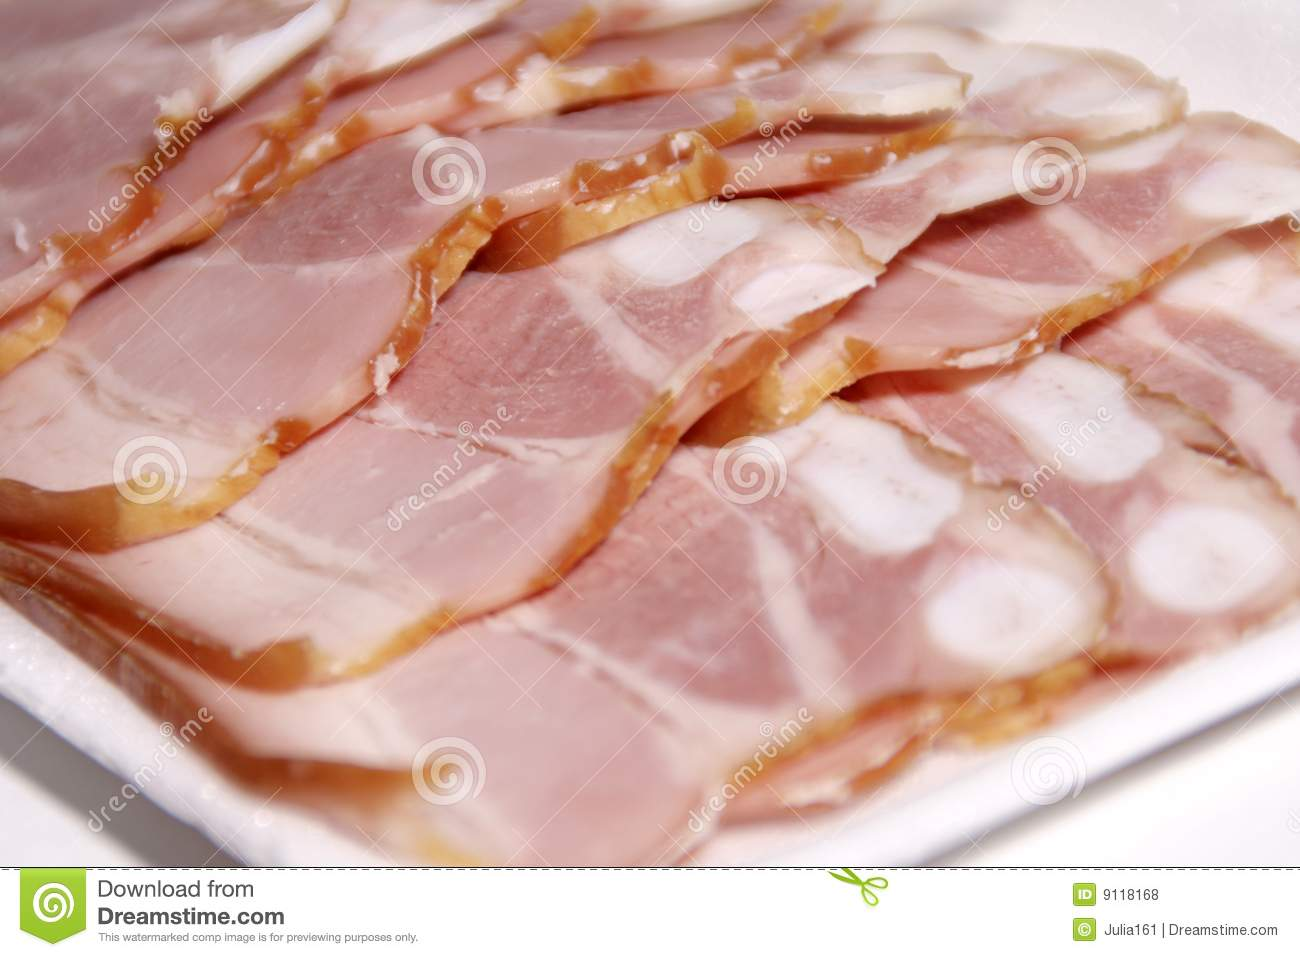 how to cook ham slices